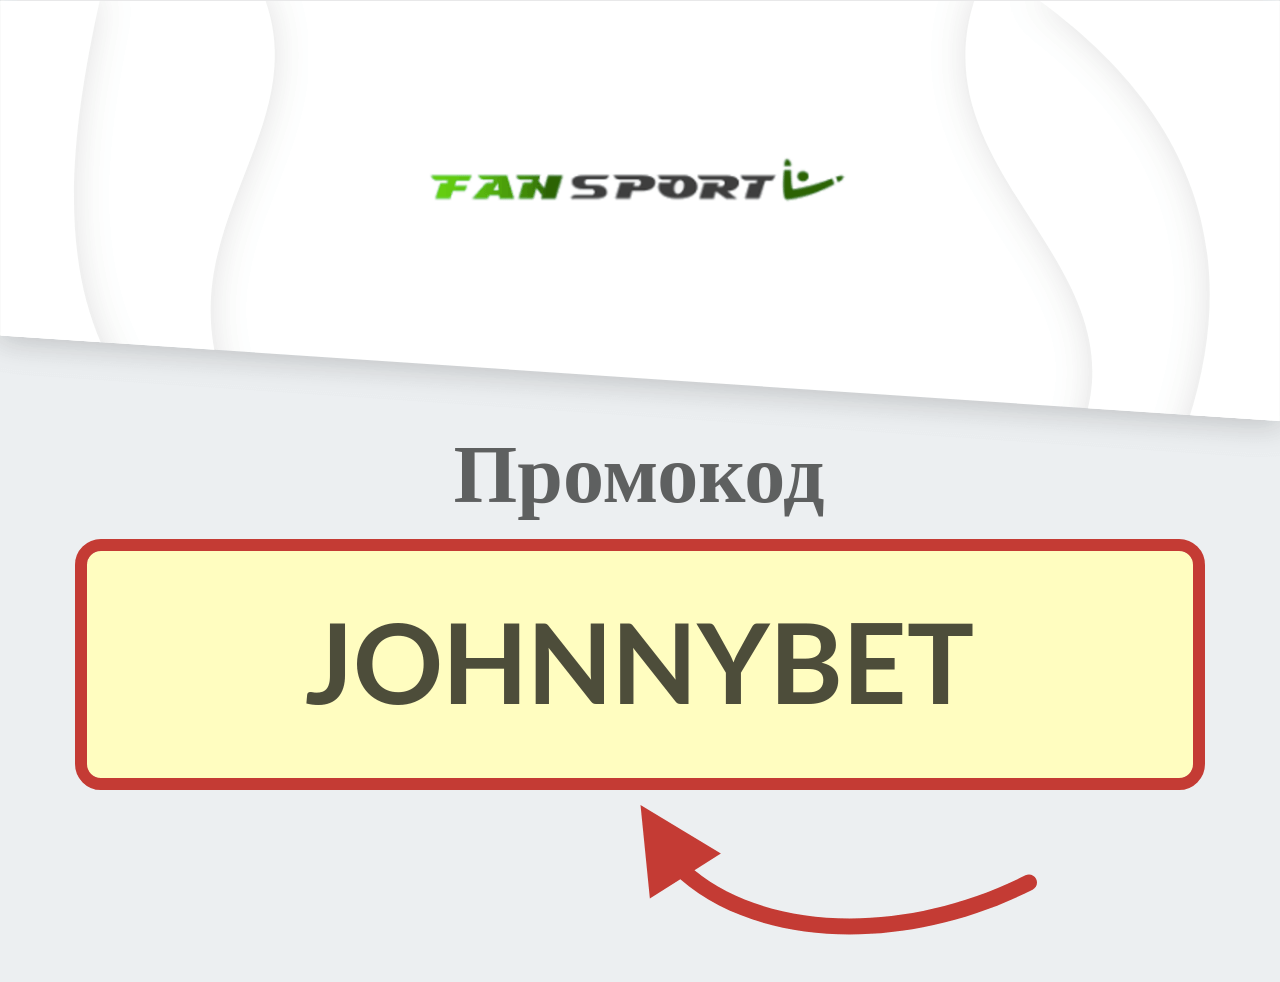 FanSport промокод